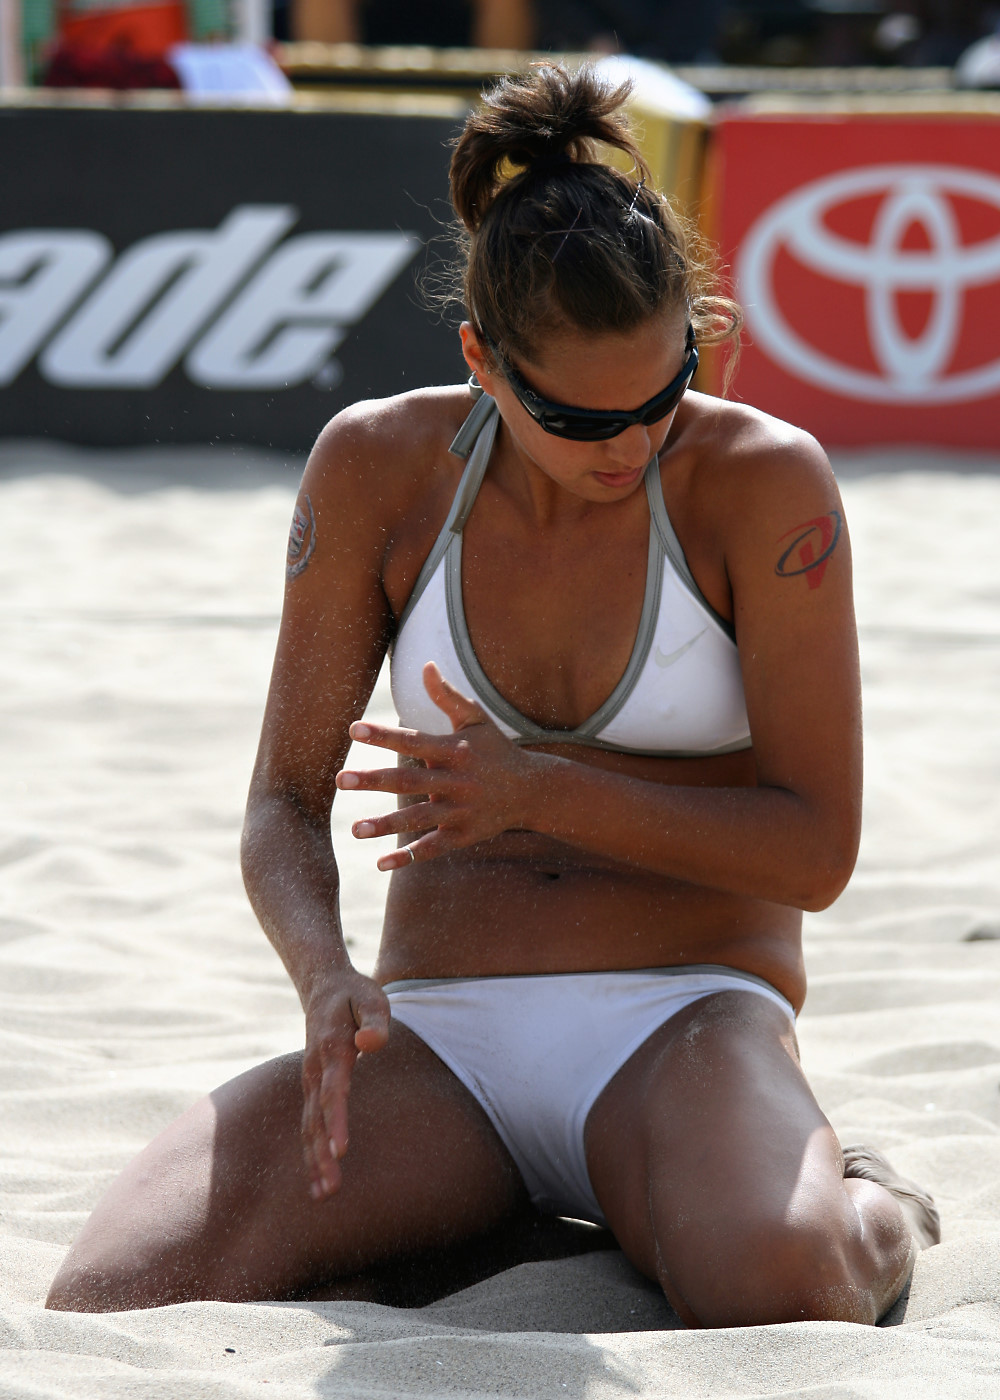 Best 25 Beach volleyball girls ideas on Pinterest Kerri